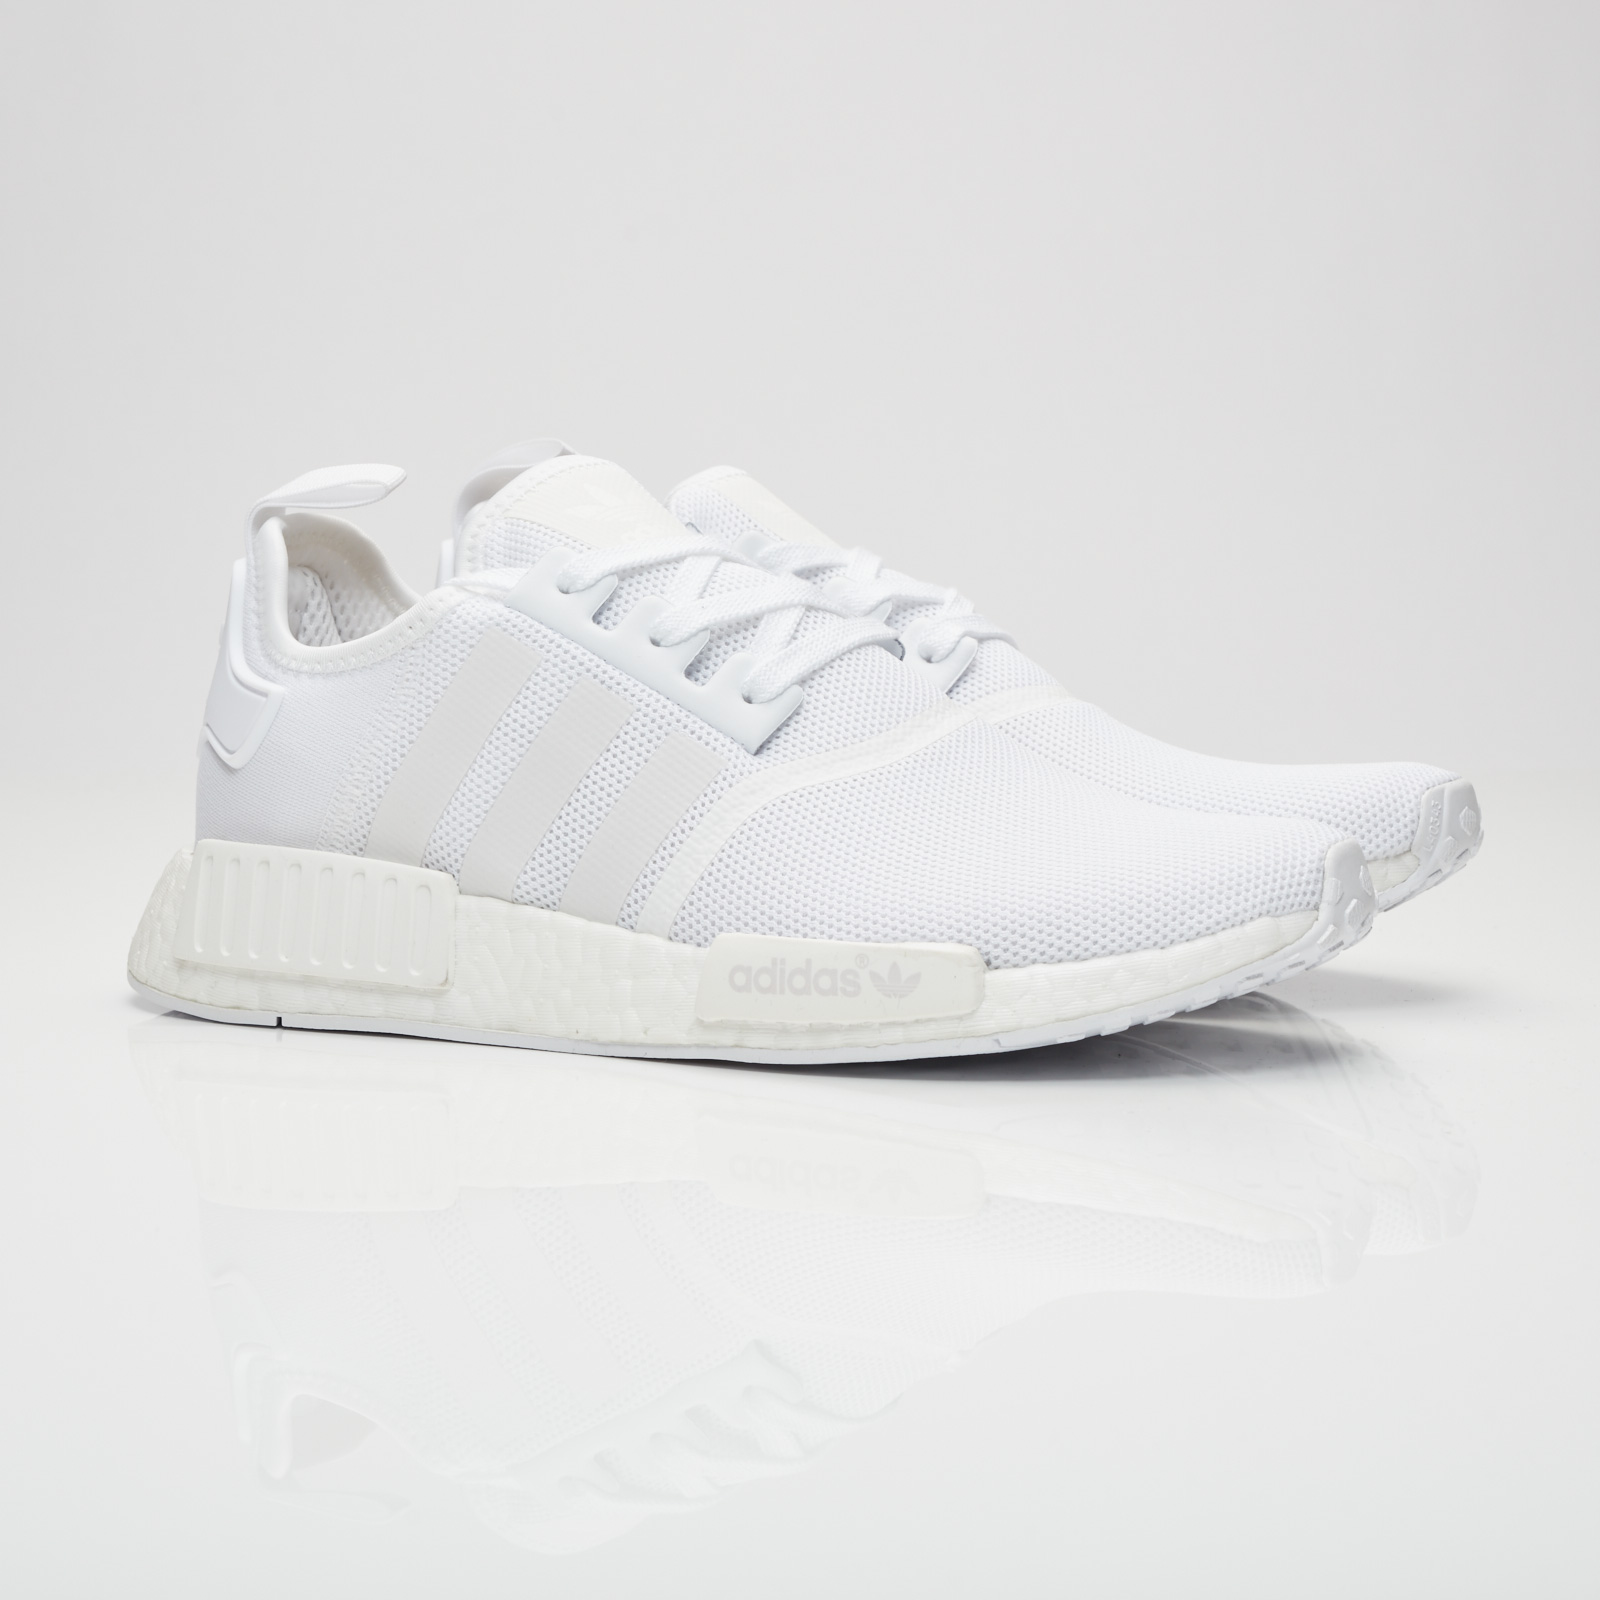 competitive price 939e8 80304 adidas Nmd R1 - Ba7245 - Sneakersnstuff | sneakers ...